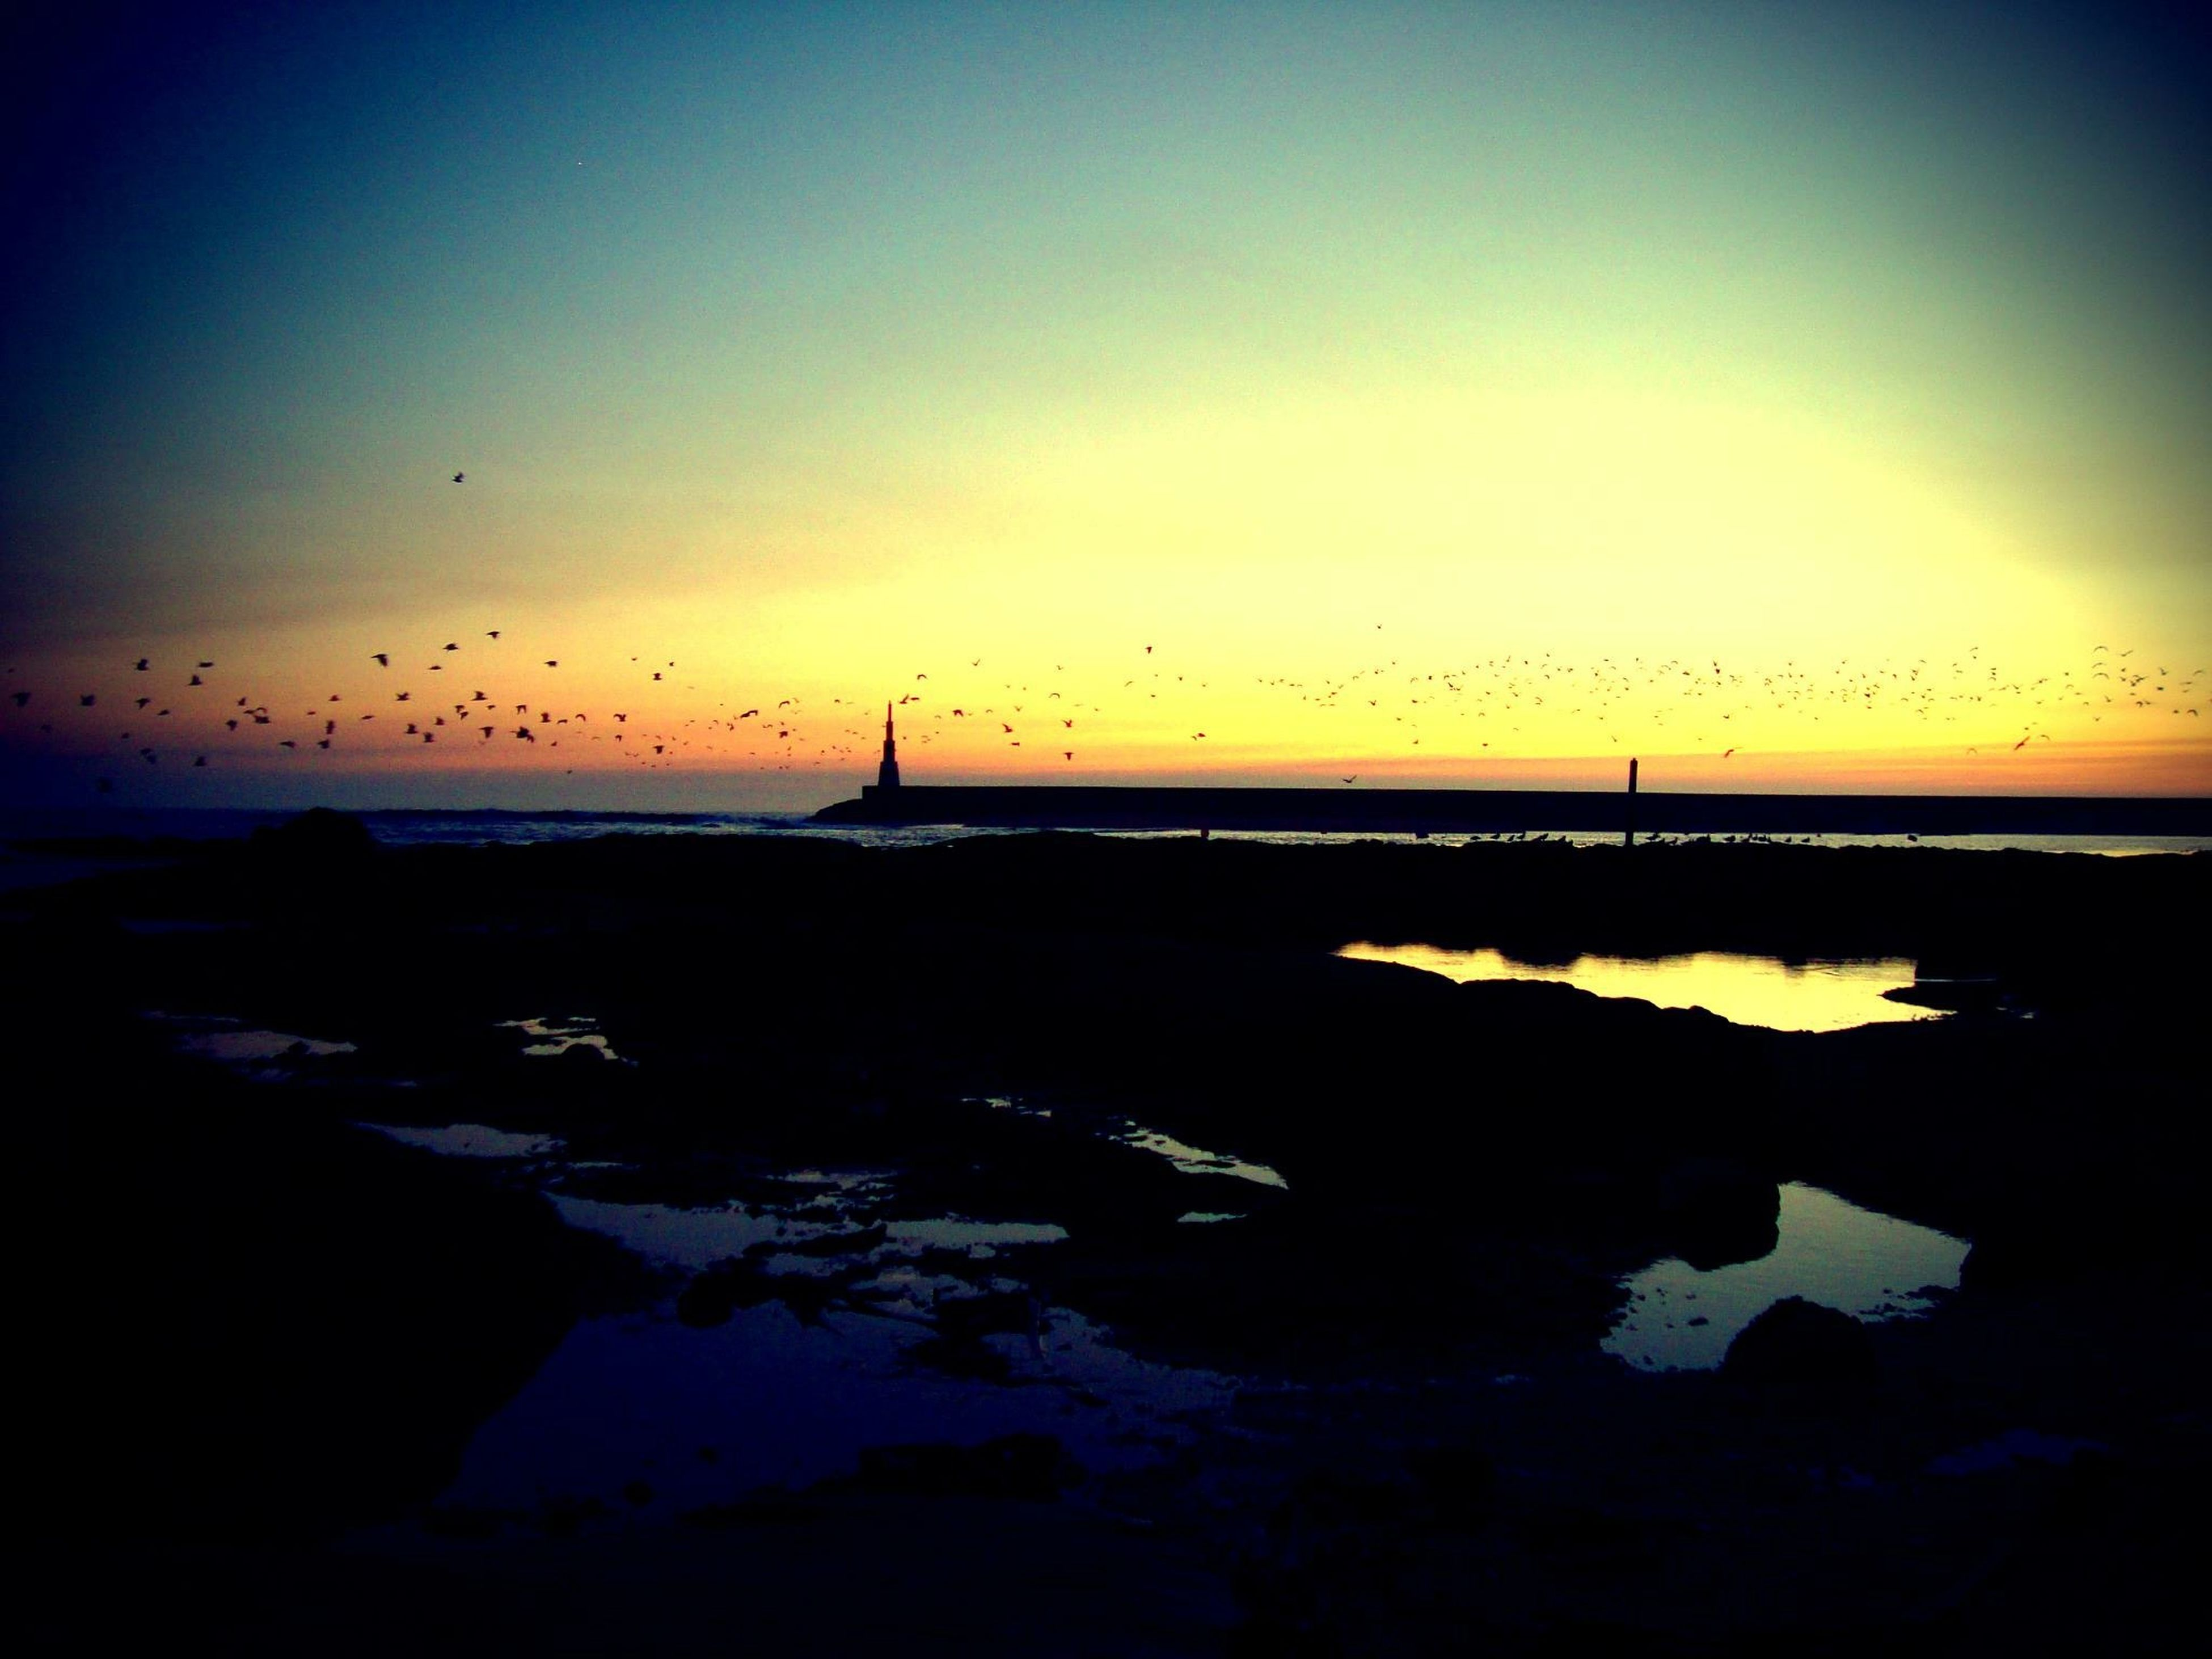 sunset, water, sea, silhouette, sky, scenics, tranquil scene, beauty in nature, tranquility, horizon over water, nature, bird, beach, dusk, idyllic, orange color, shore, reflection, rock - object, outdoors